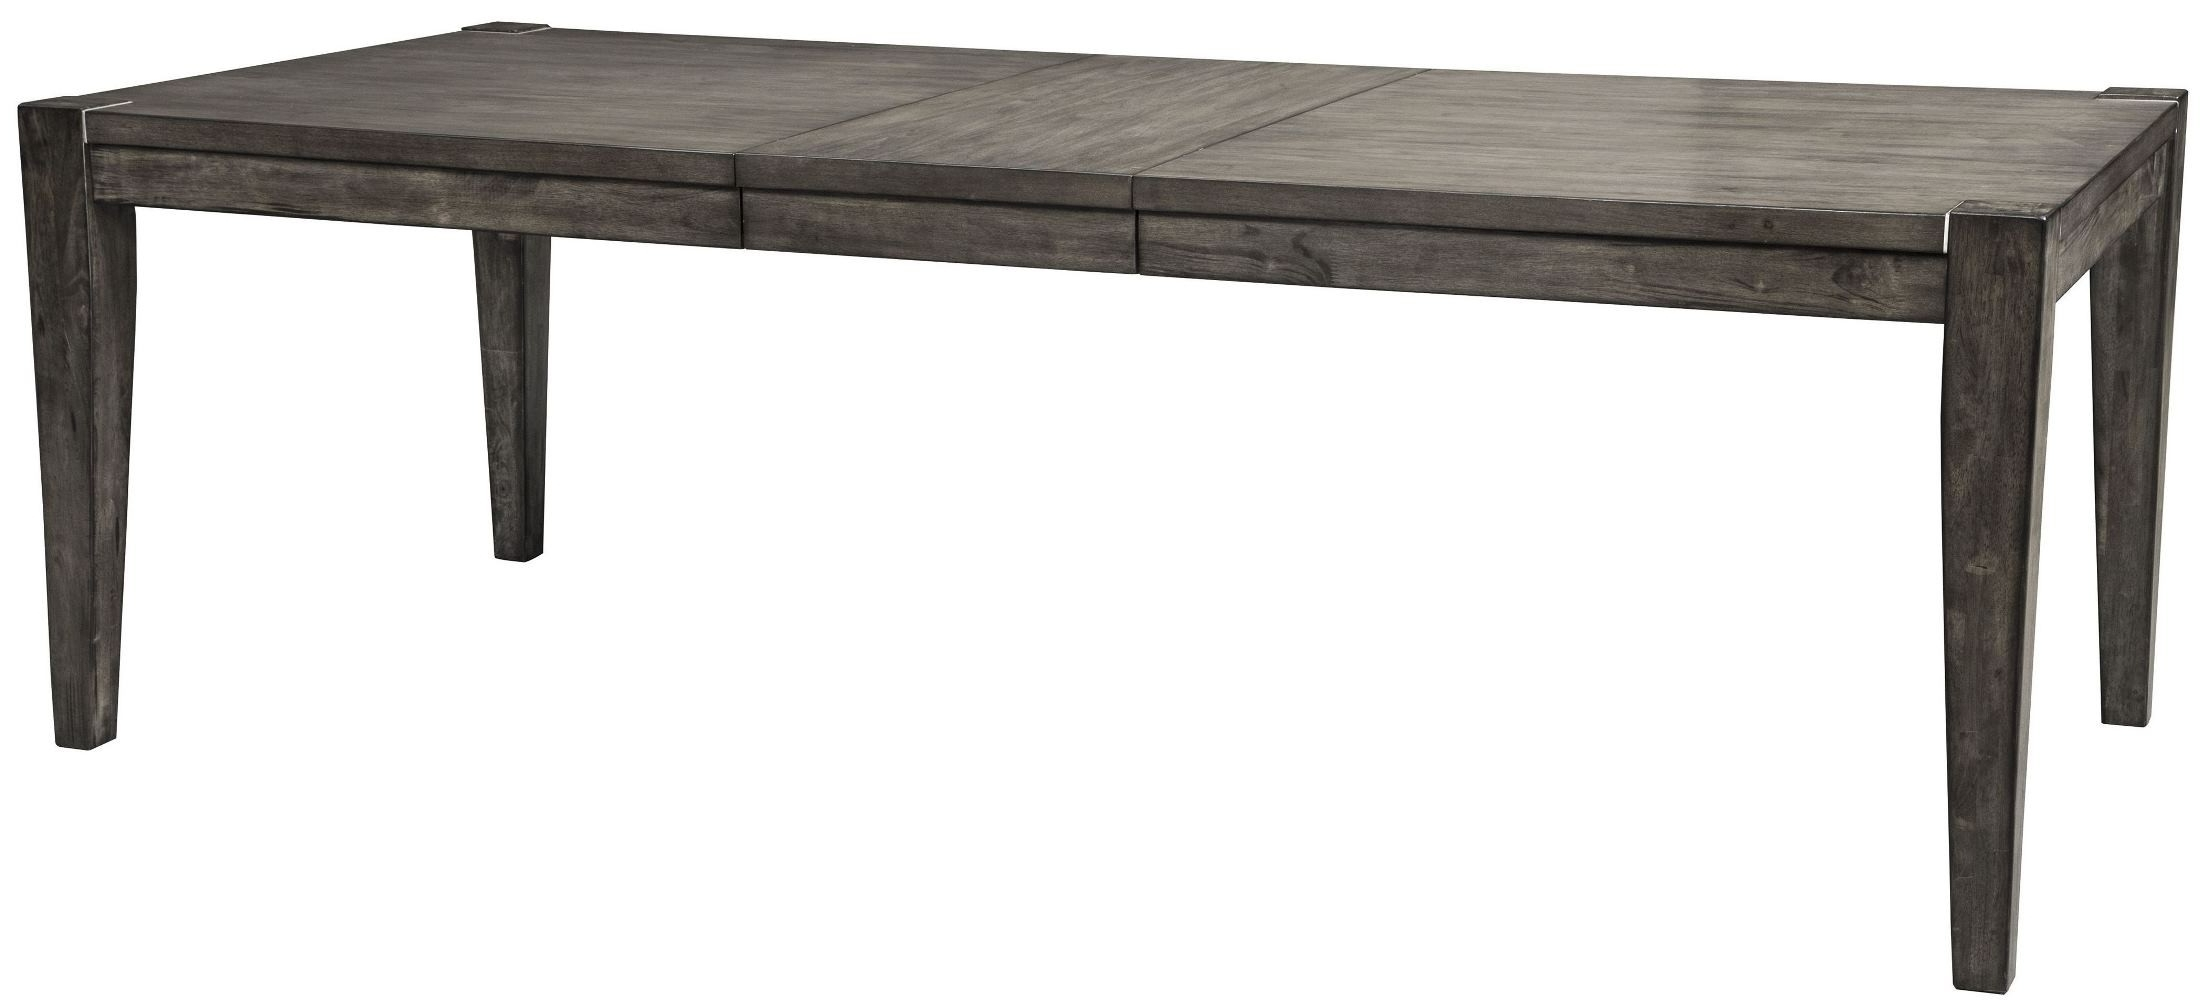 Signature Designashley Chadoni Gray Rectangular Extendable Throughout Newest Craftsman Rectangle Extension Dining Tables (View 23 of 25)